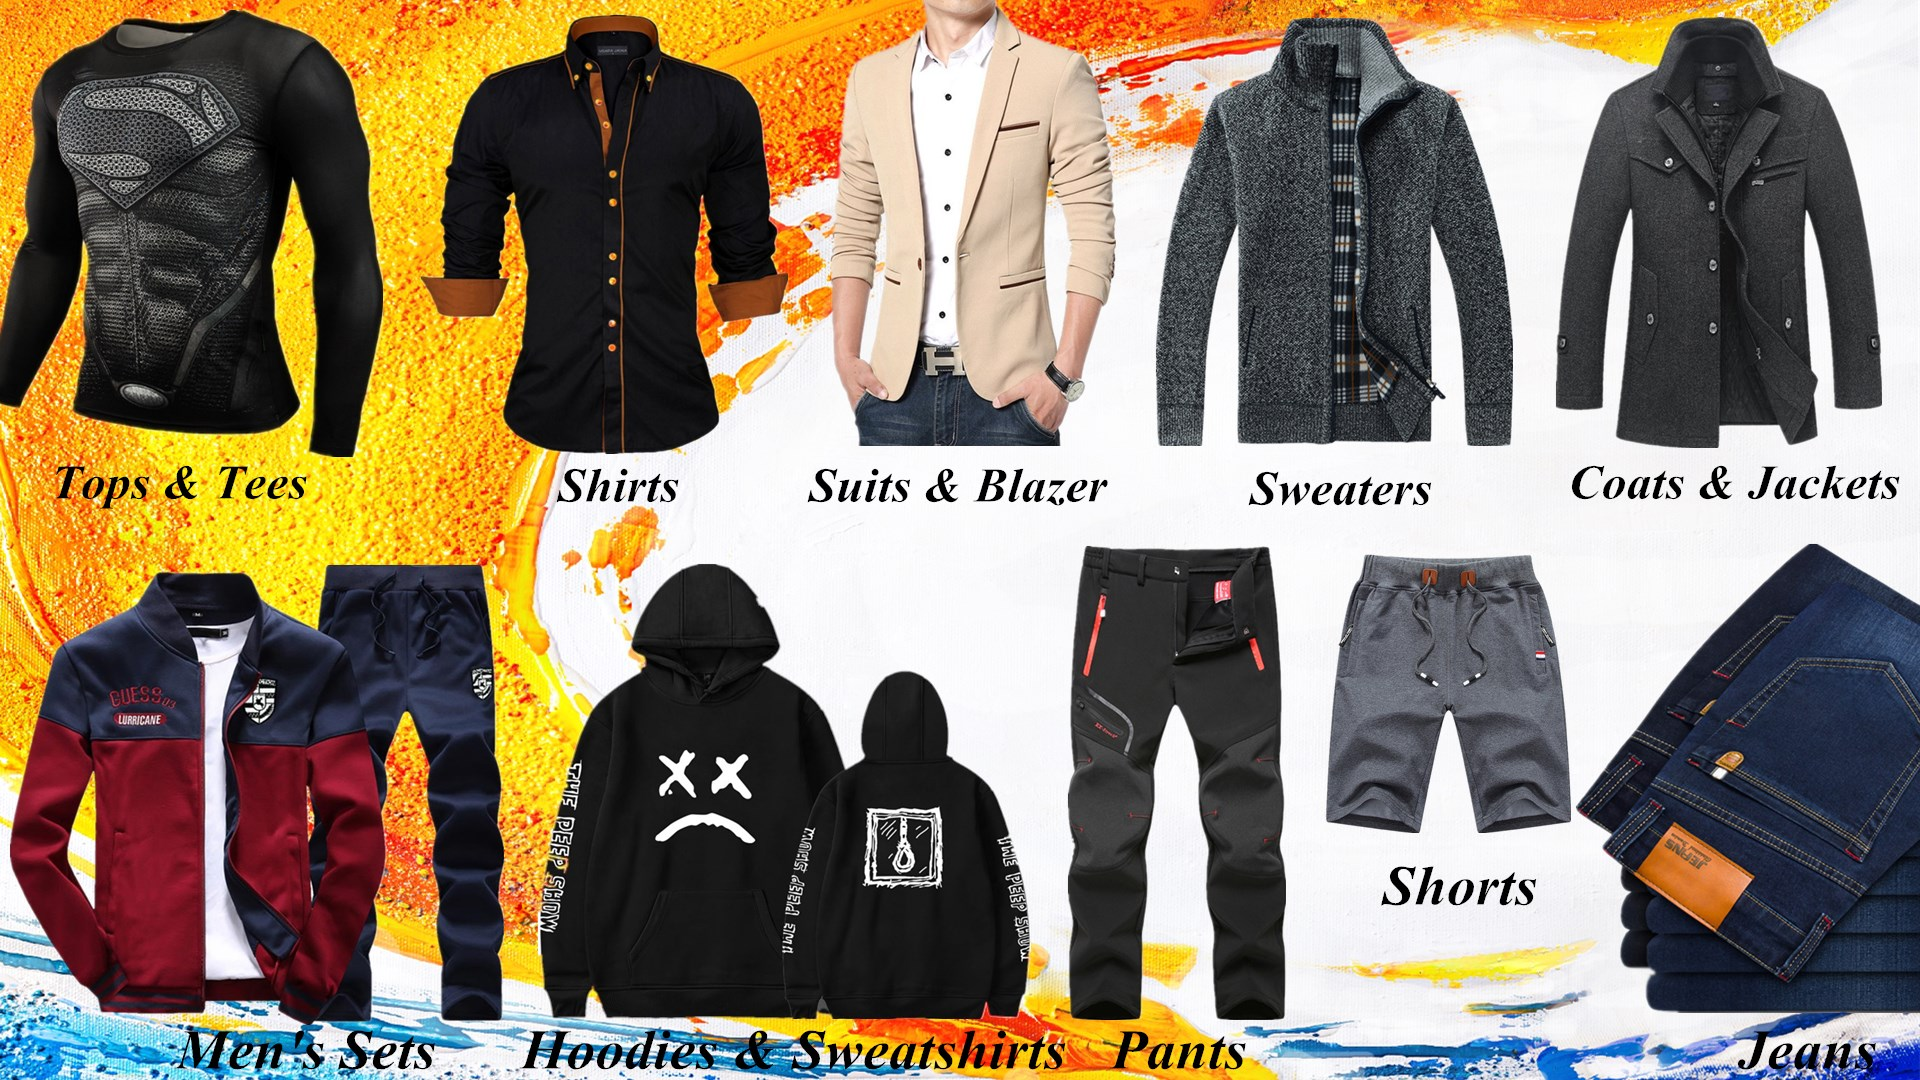 810903ecf5872 World Menswear Store - Small Orders Online Store, Hot Selling and ...